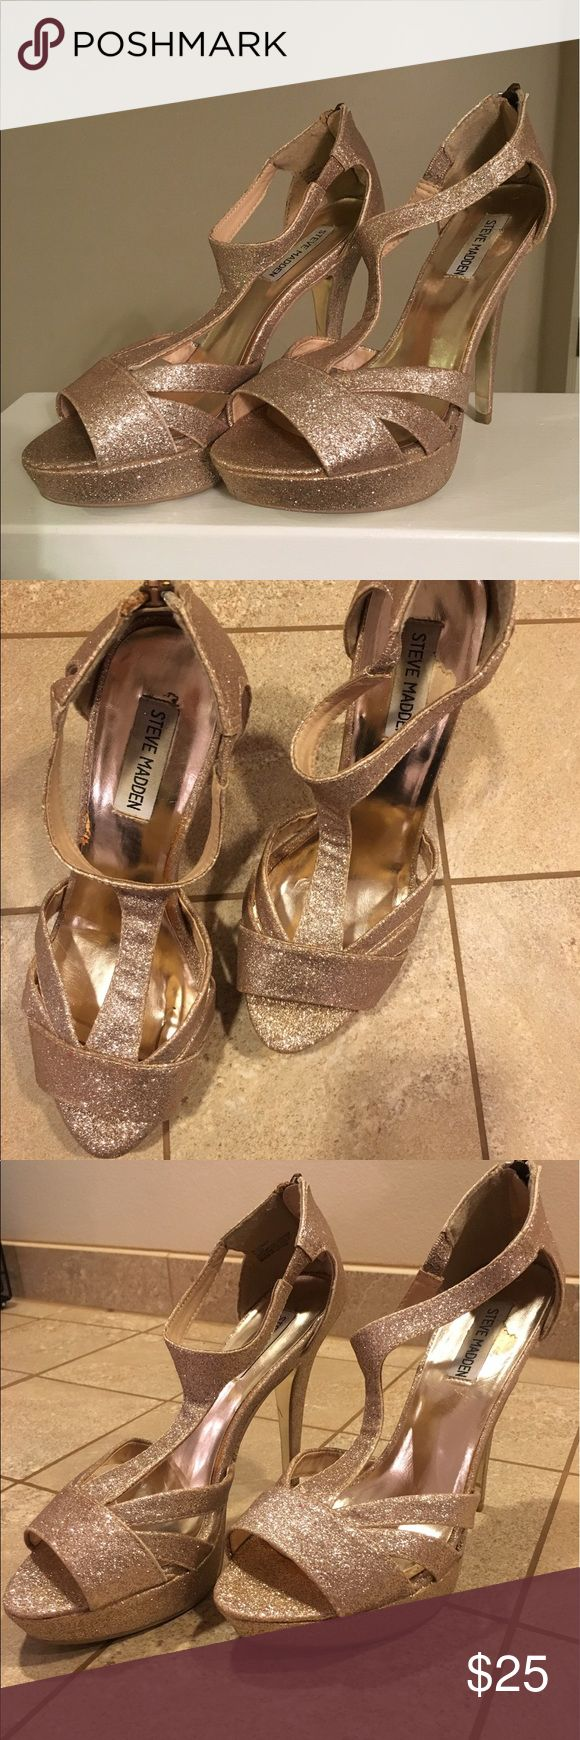 Steve Madden Gold Glitter Heels -- Size 9 Gold glitter heels with zipper in back. Worn only twice. Please ask any questions you may have! Steve Madden Shoes Heels